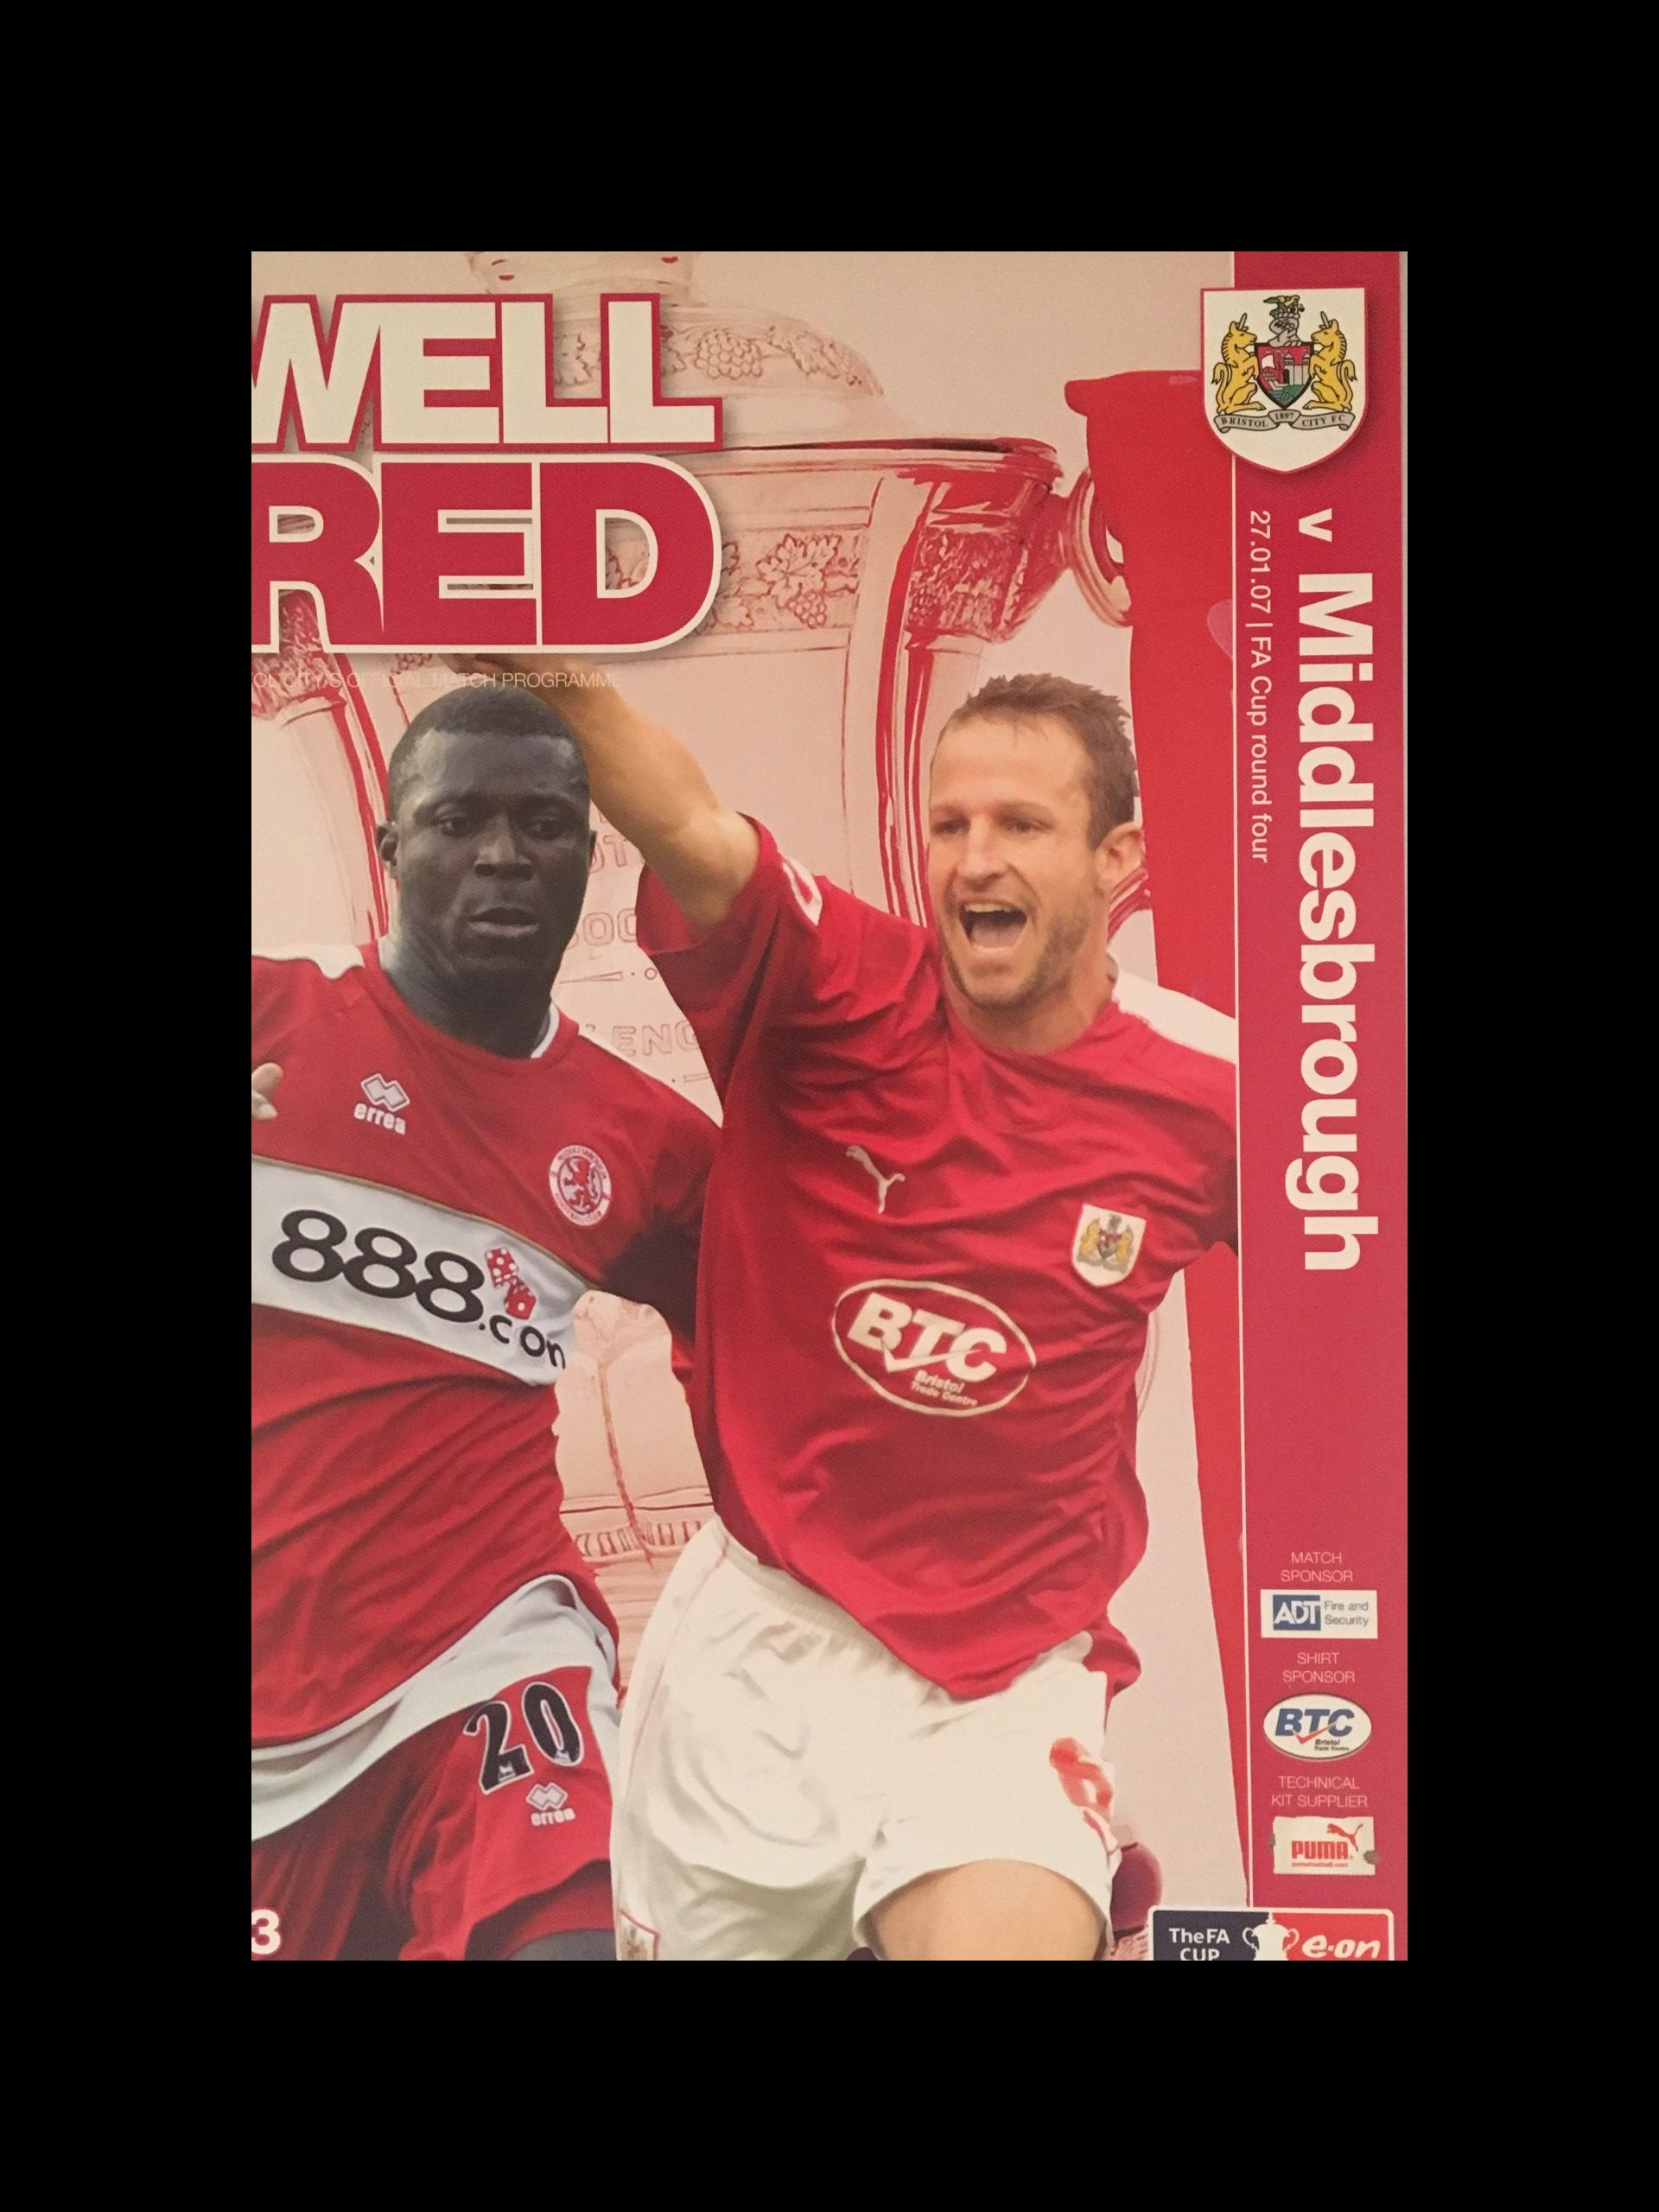 Bristol City v Middlesbrough 27-01-2007 Programme